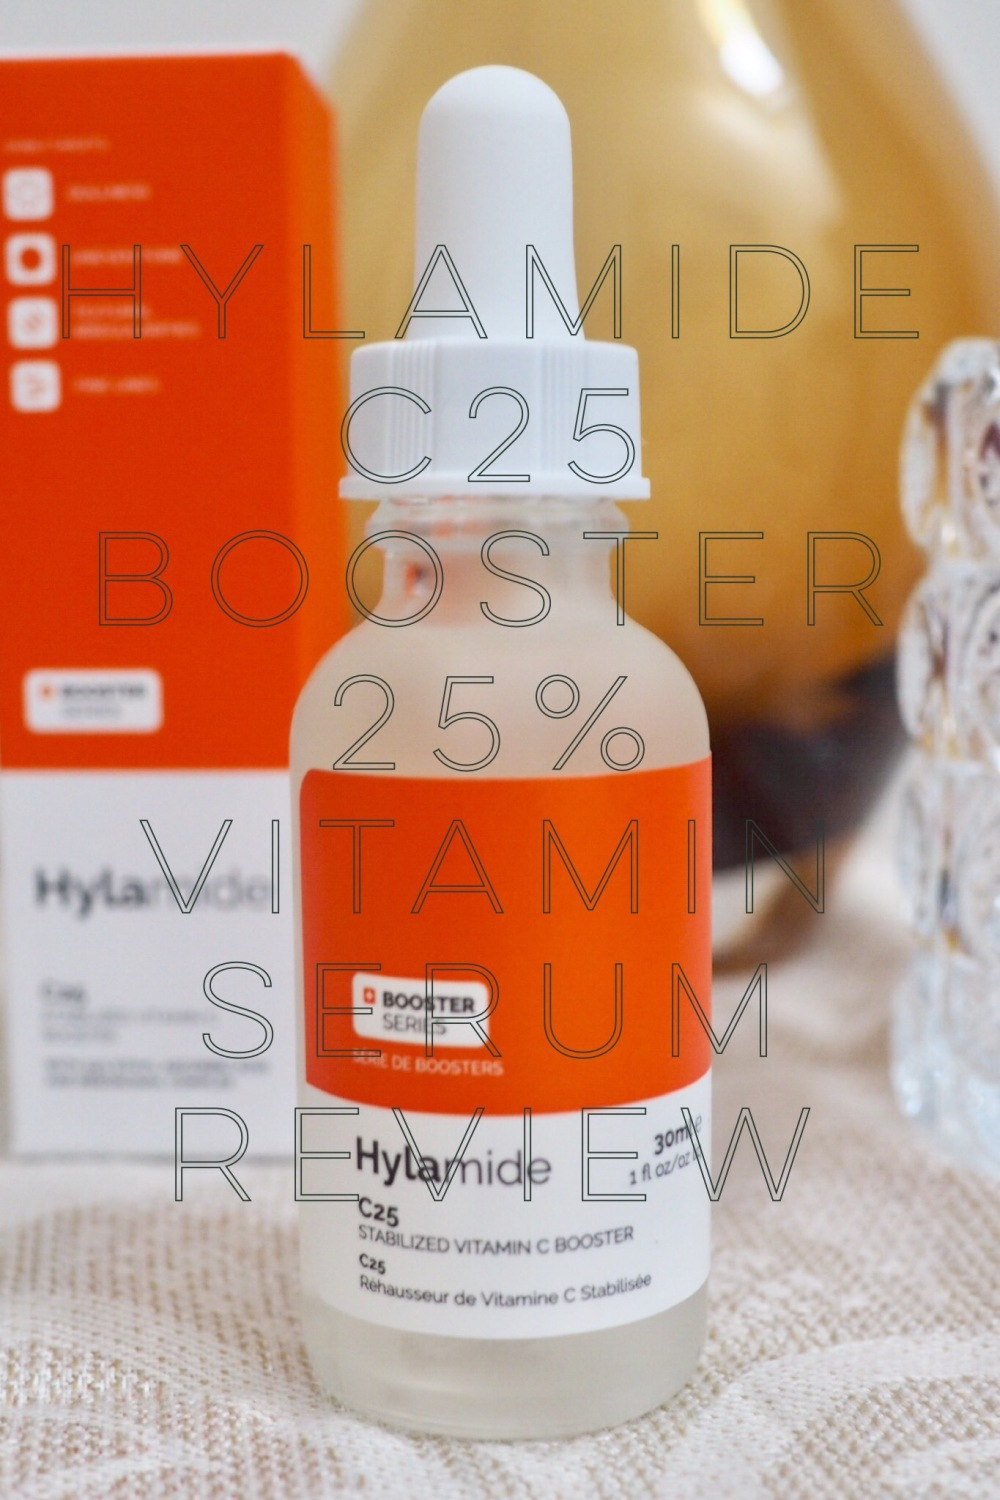 Hylamide 25% Vitamin C C25 Booster pinnable image of packaging